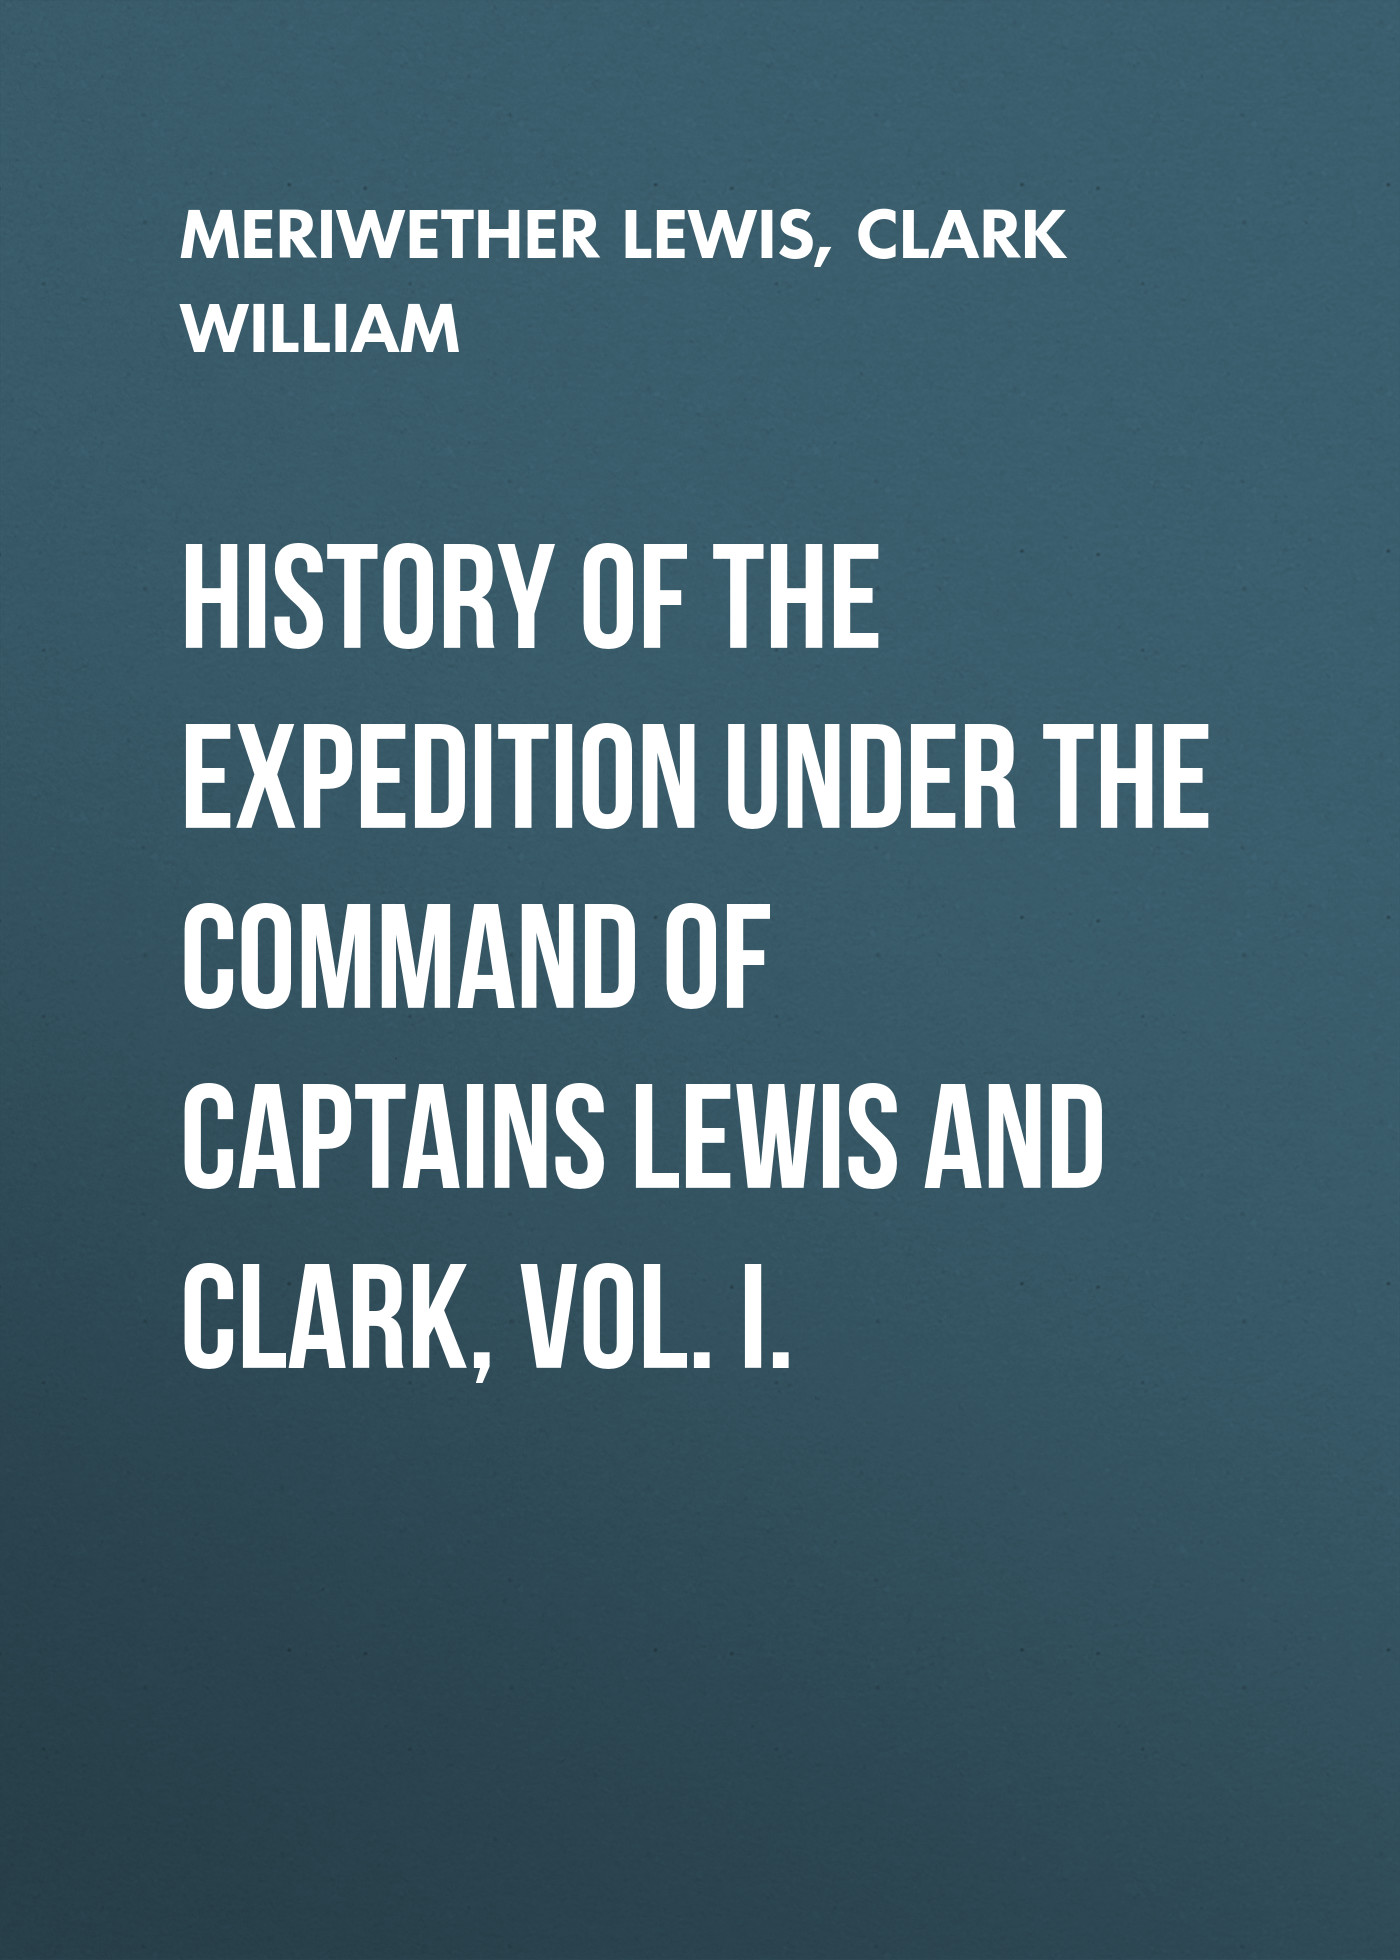 Clark William History of the Expedition under the Command of Captains Lewis and Clark, Vol. I. william monroe cockrum pioneer history of indiana including stories incidents and customs of the early settlers